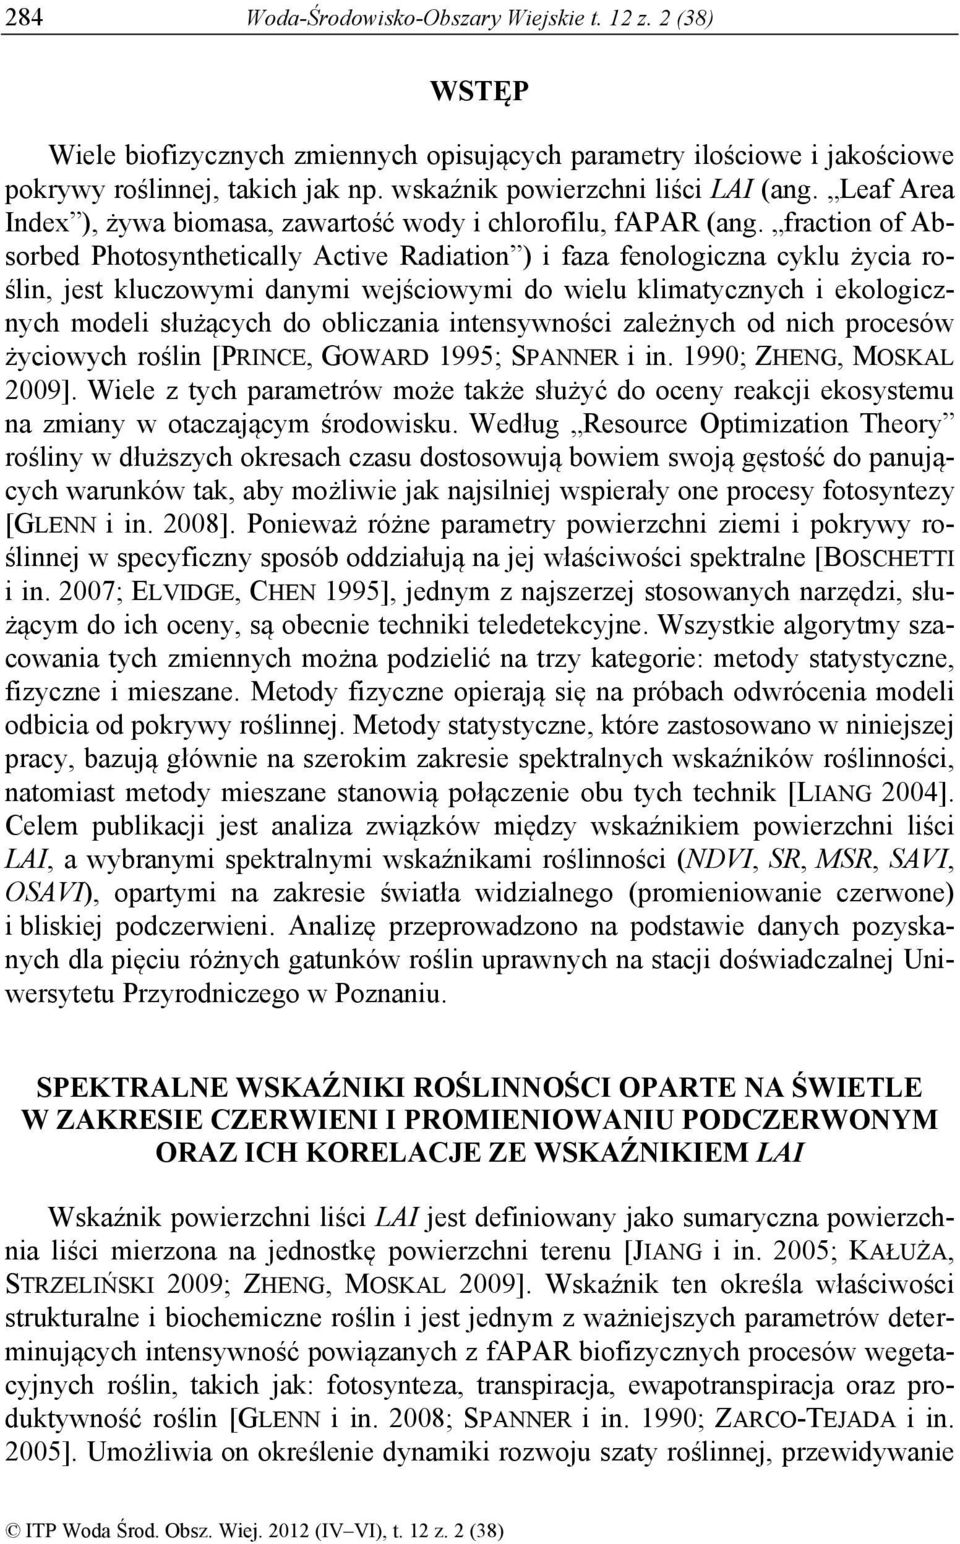 fraction of Absorbed Photosynthetically Active Radiation ) i faza fenologiczna cyklu życia roślin, jest kluczowymi danymi wejściowymi do wielu klimatycznych i ekologicznych modeli służących do